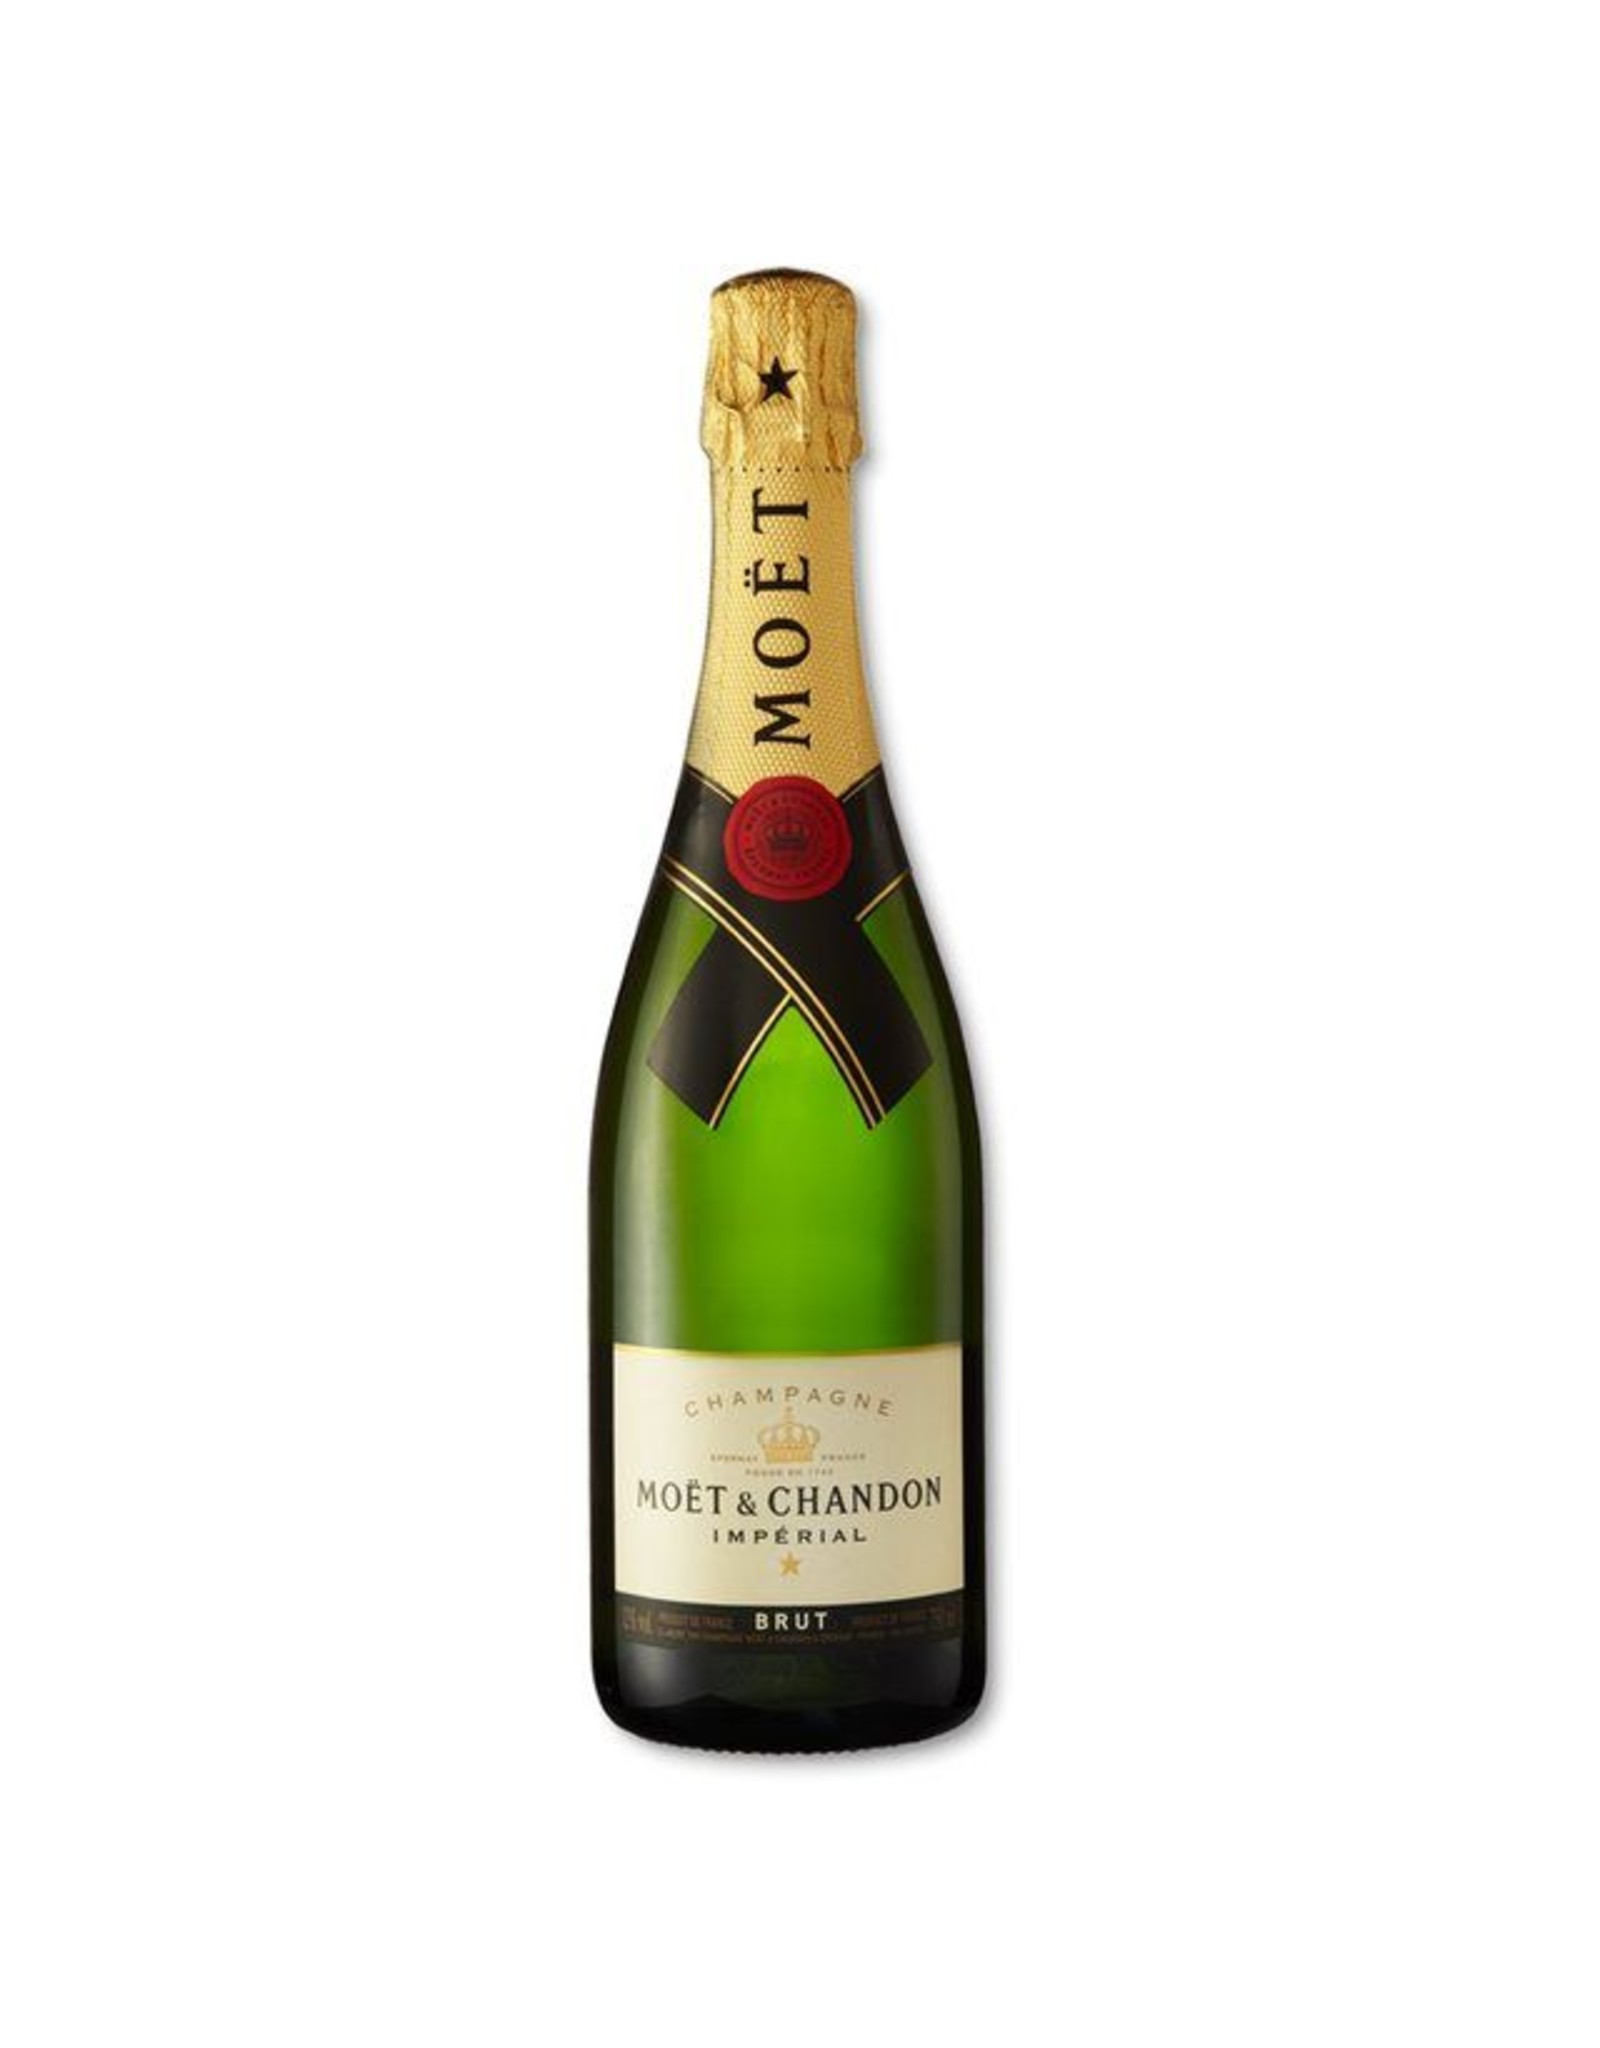 Sparkling Wine NV, Moet & Chandon Imperial Brut Reserve, Champagne, Epernay, Champagne, France, 12% Alc, CT97 TW91